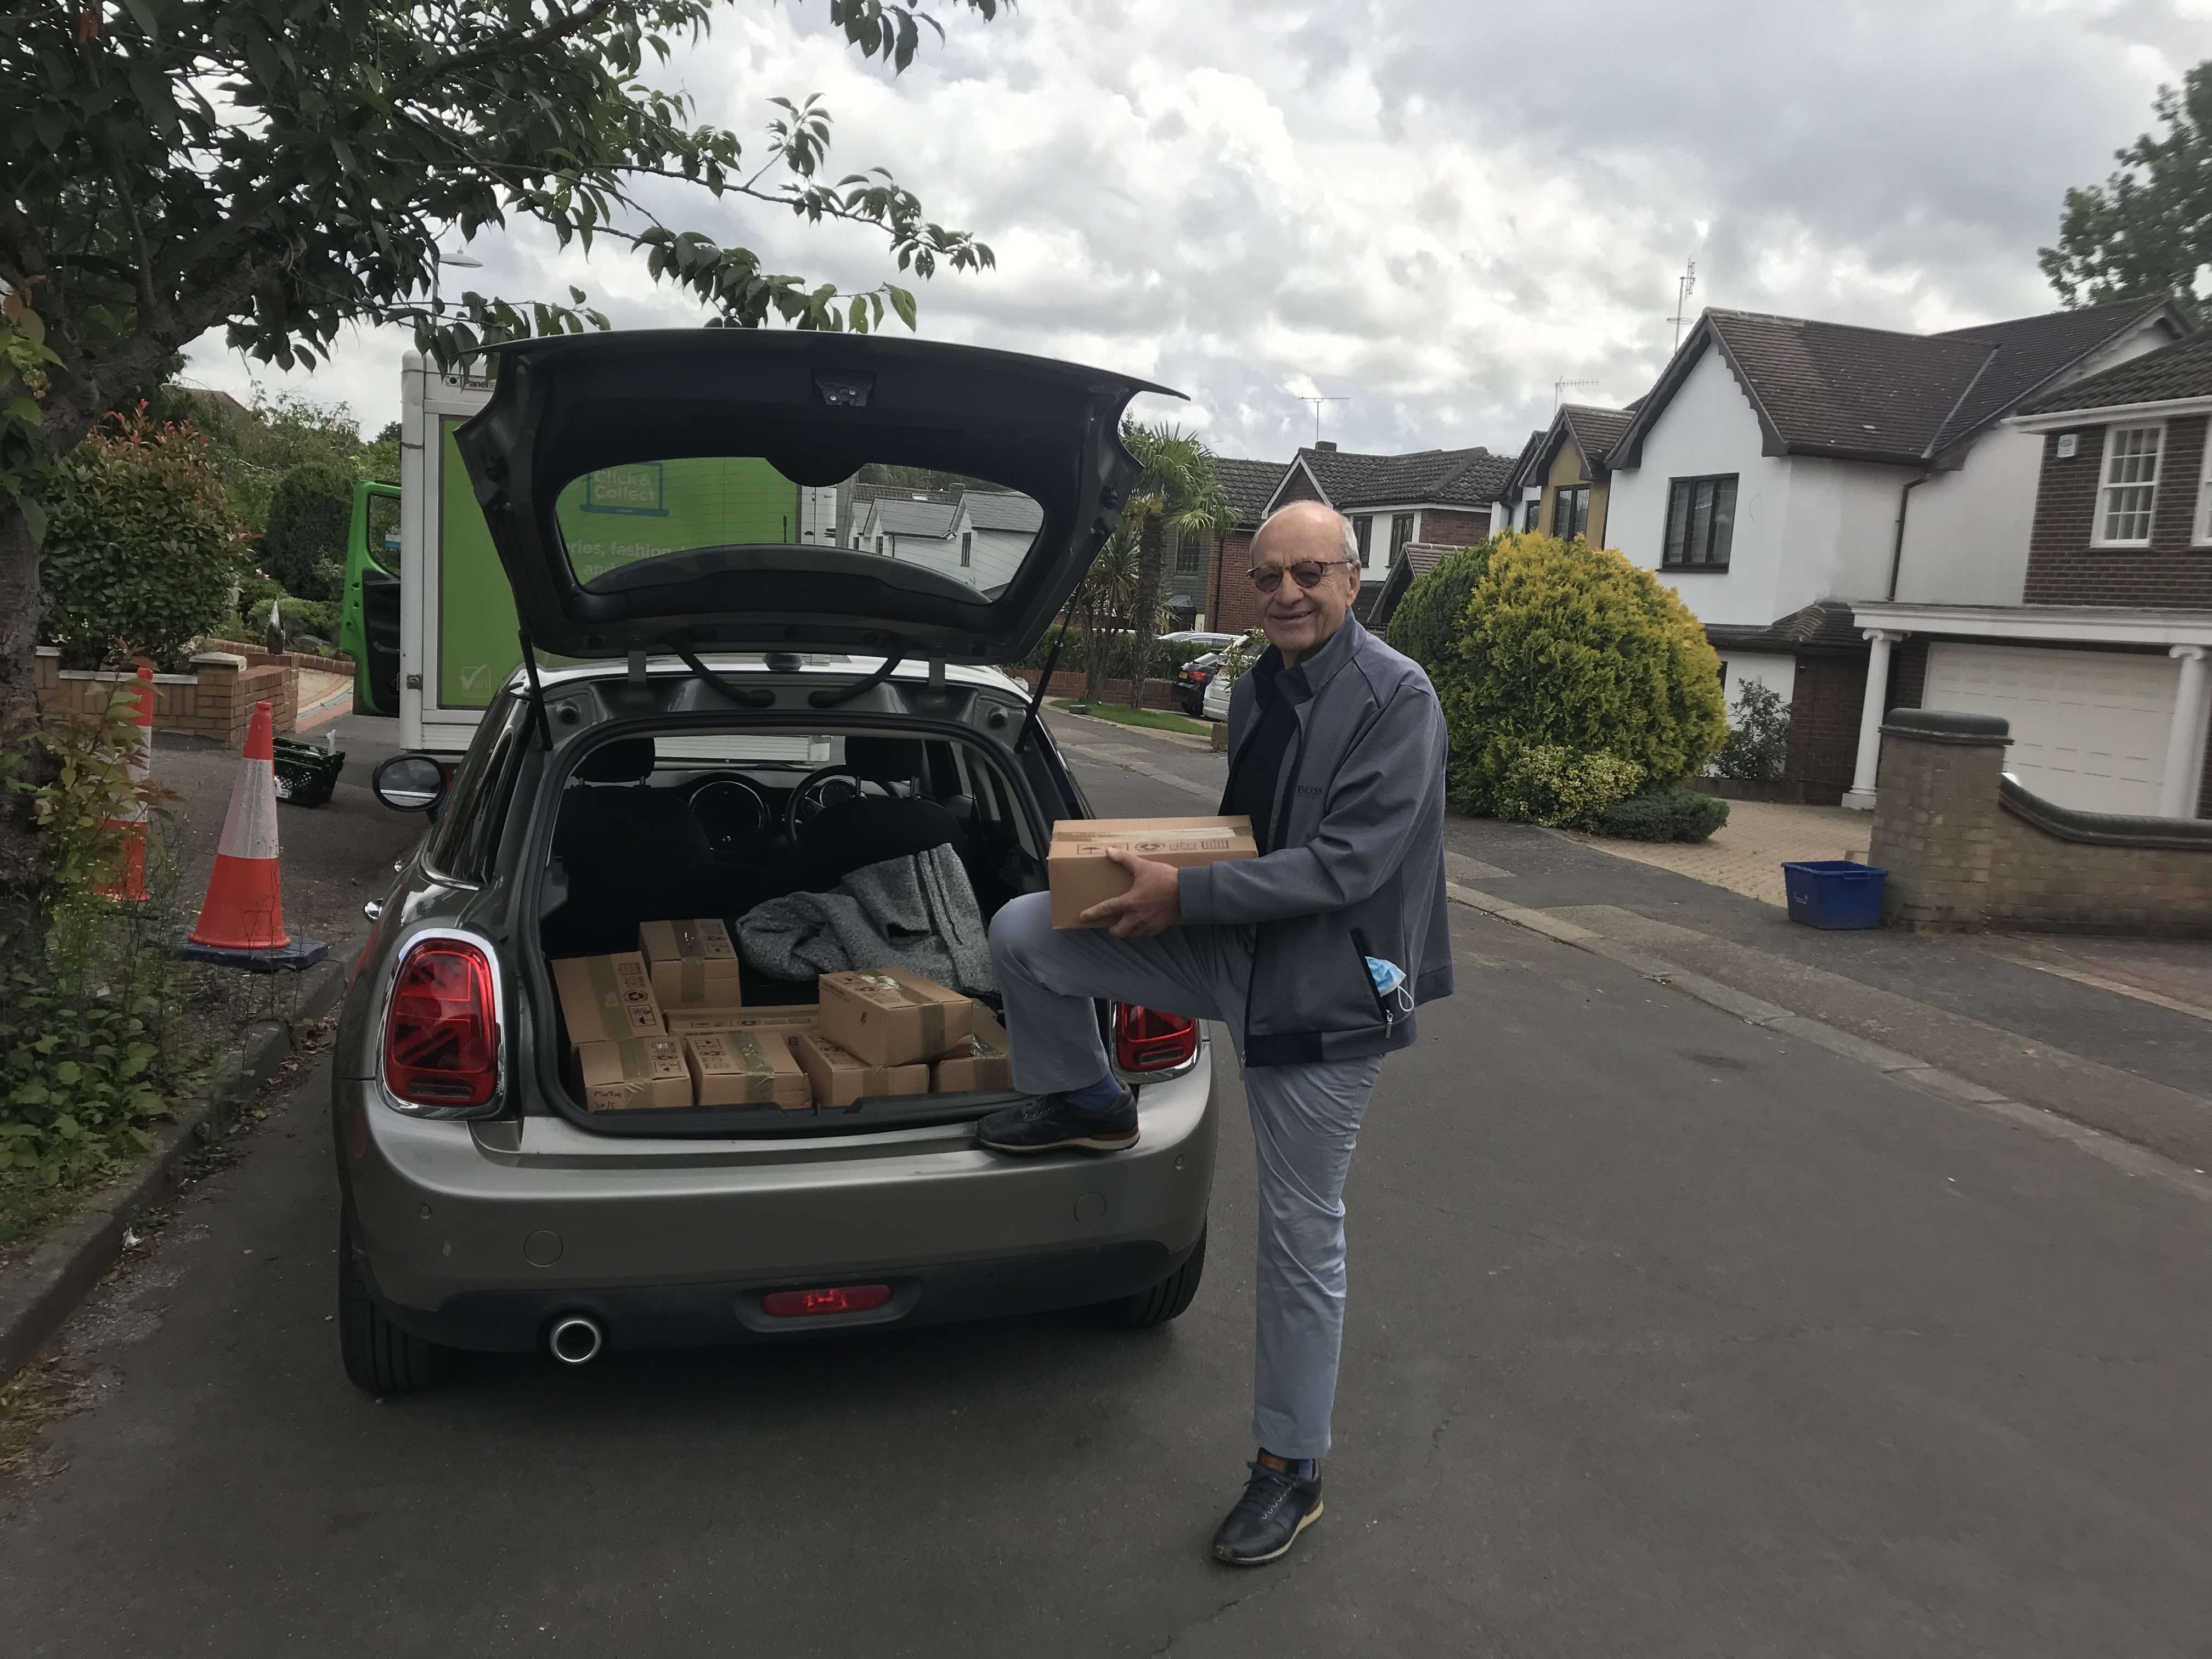 Rotarian George picks up boxes of chocolates donated by M&Ms